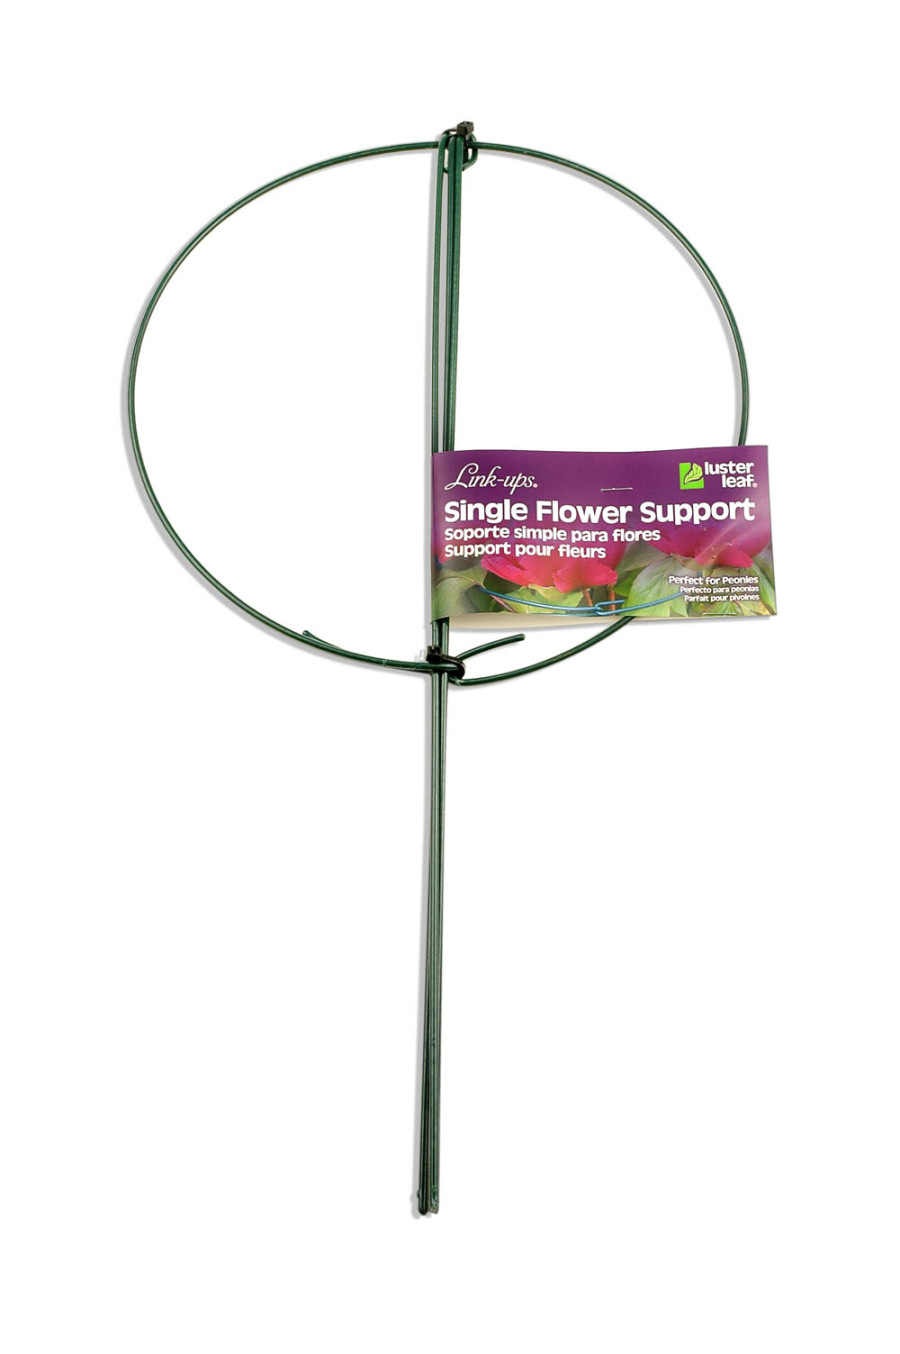 Luster Leaf Link-ups Single Flower Support with Legs